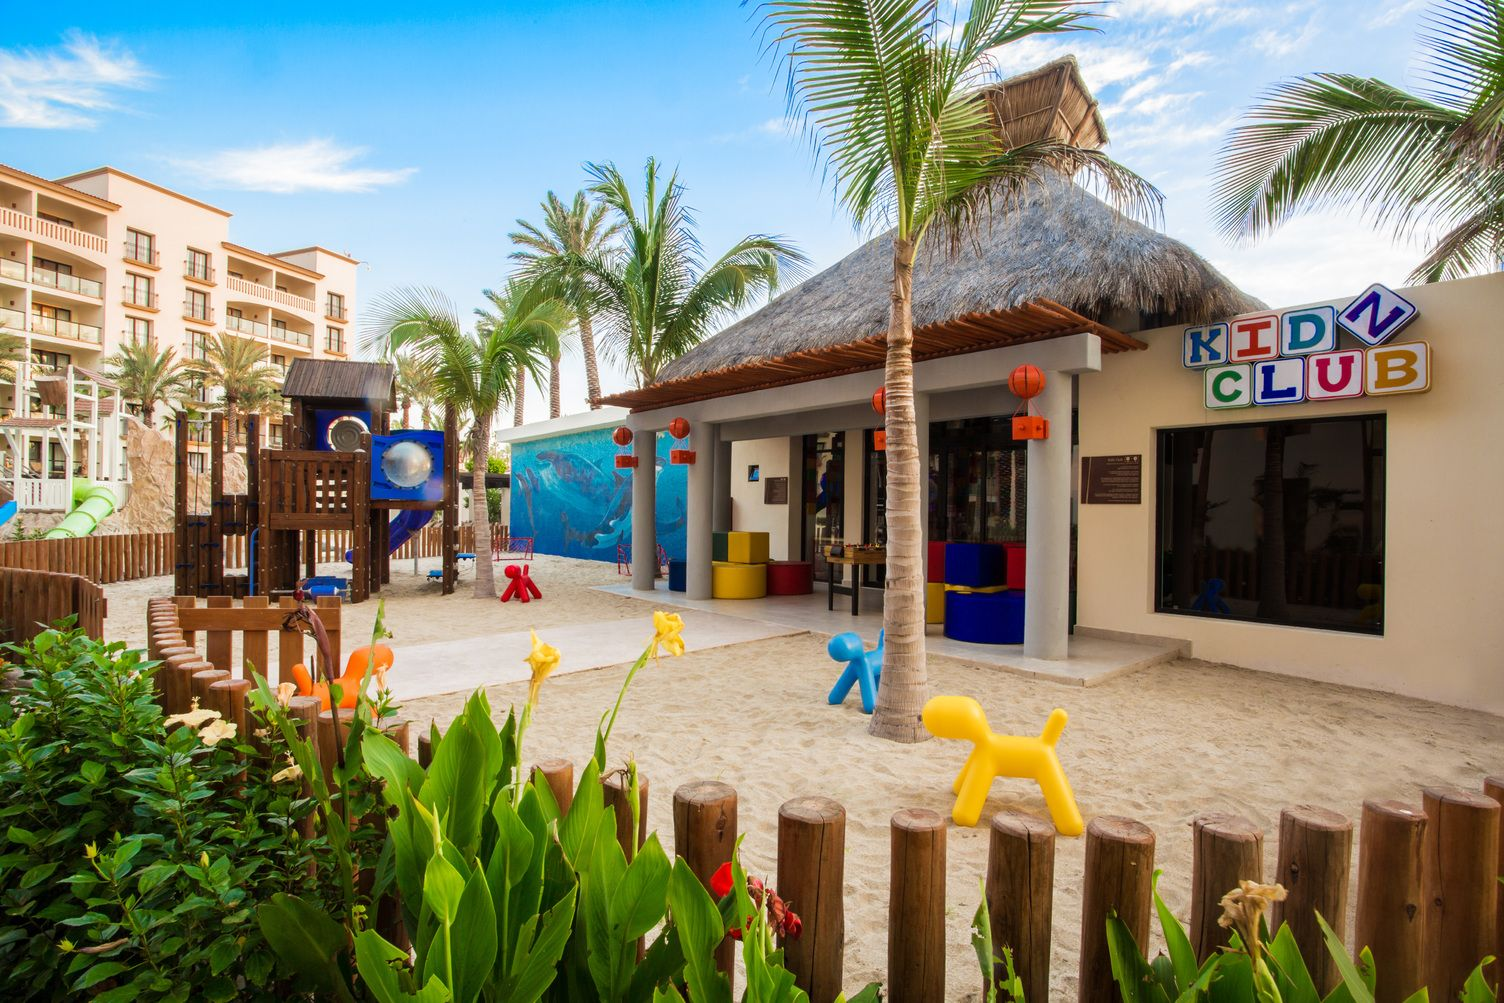 Kidz Club at Hyatt Ziva Los Cabos With images  Hyatt